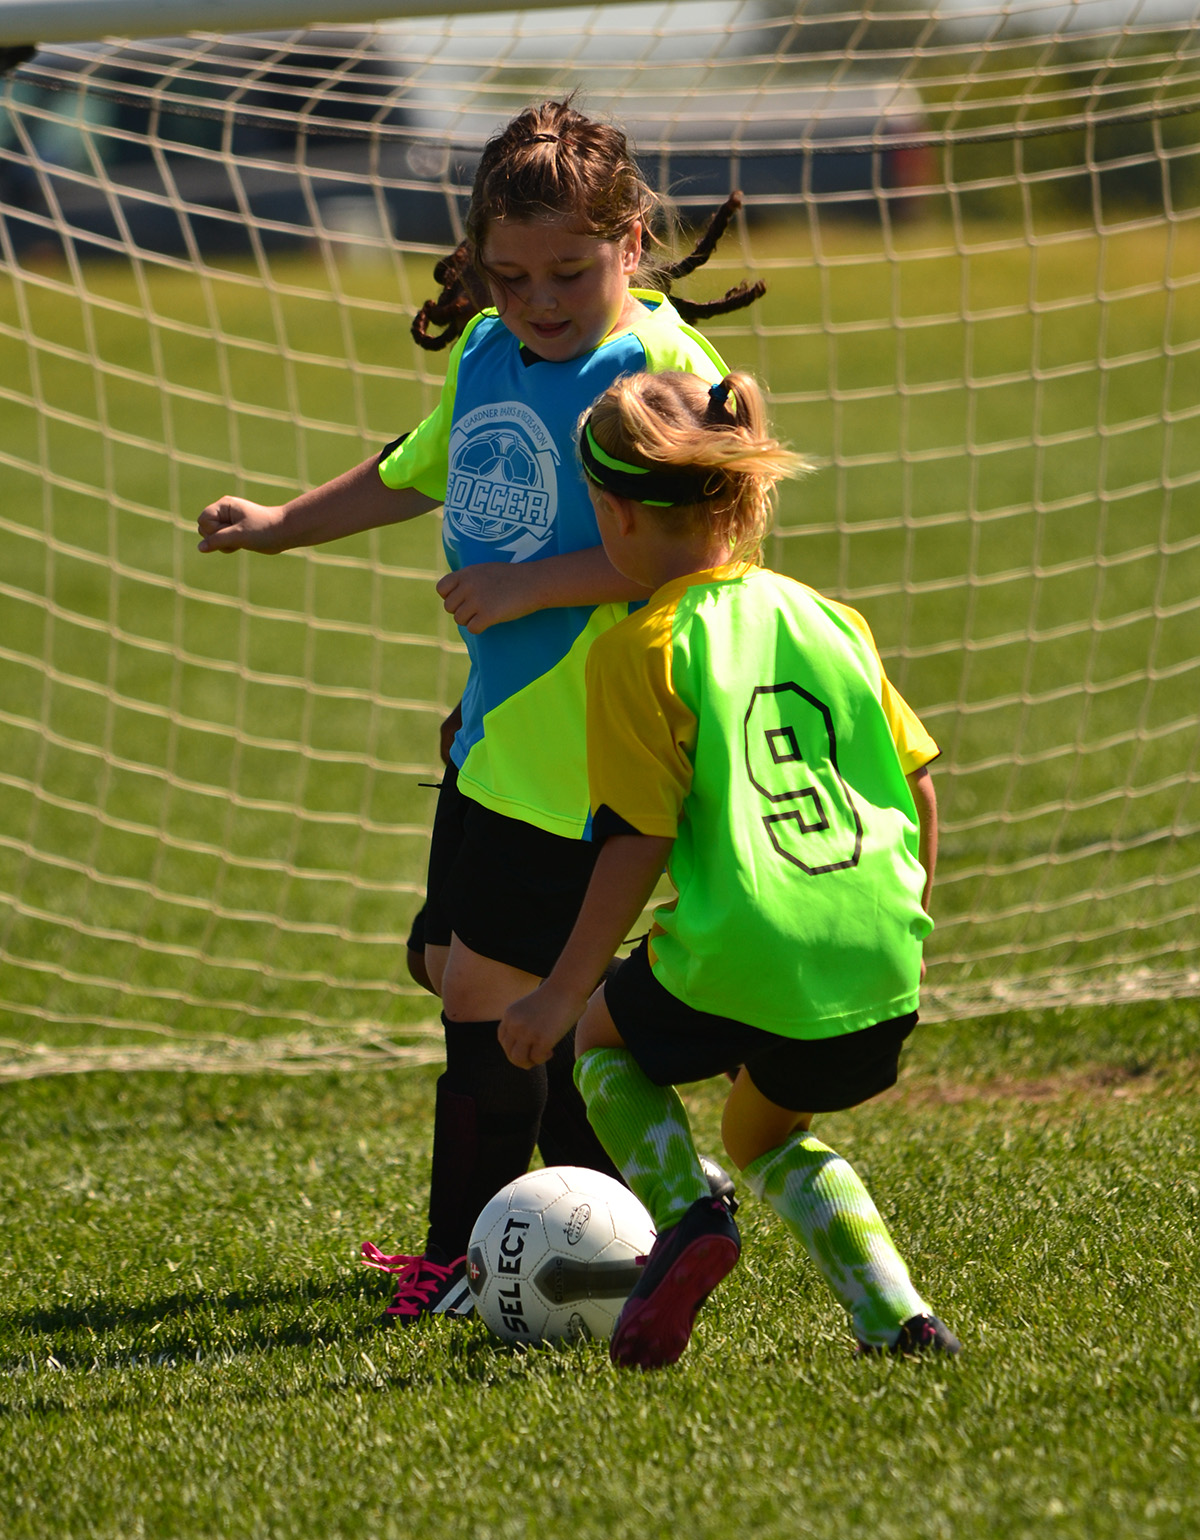 46a32965f24 Youth Recreational Soccer